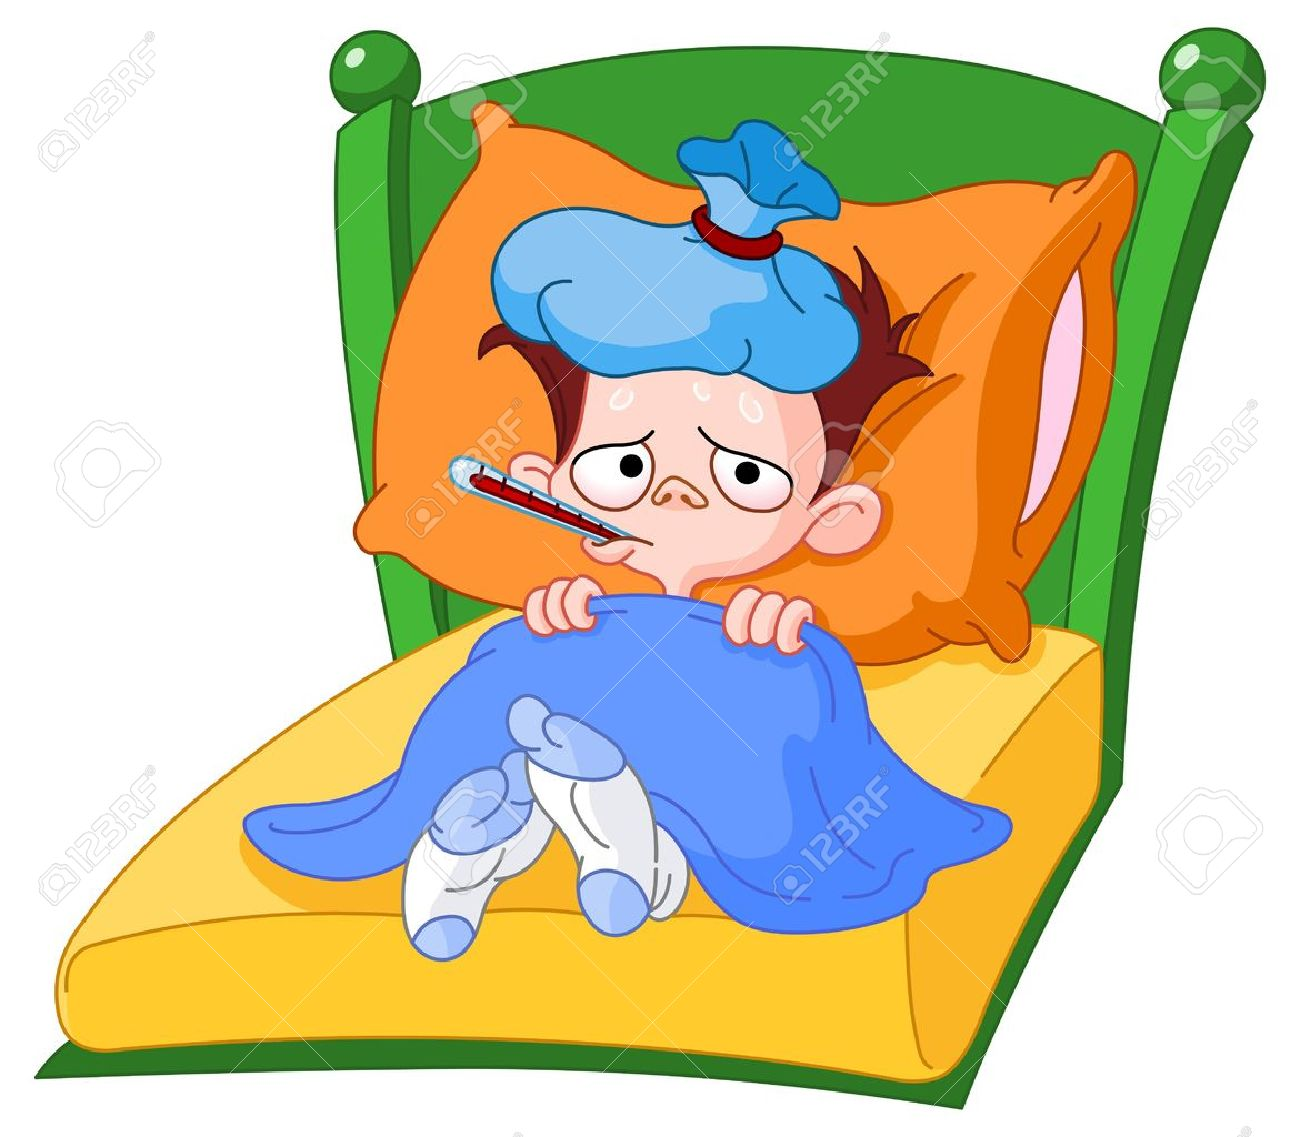 Malade clipart » Clipart Station.